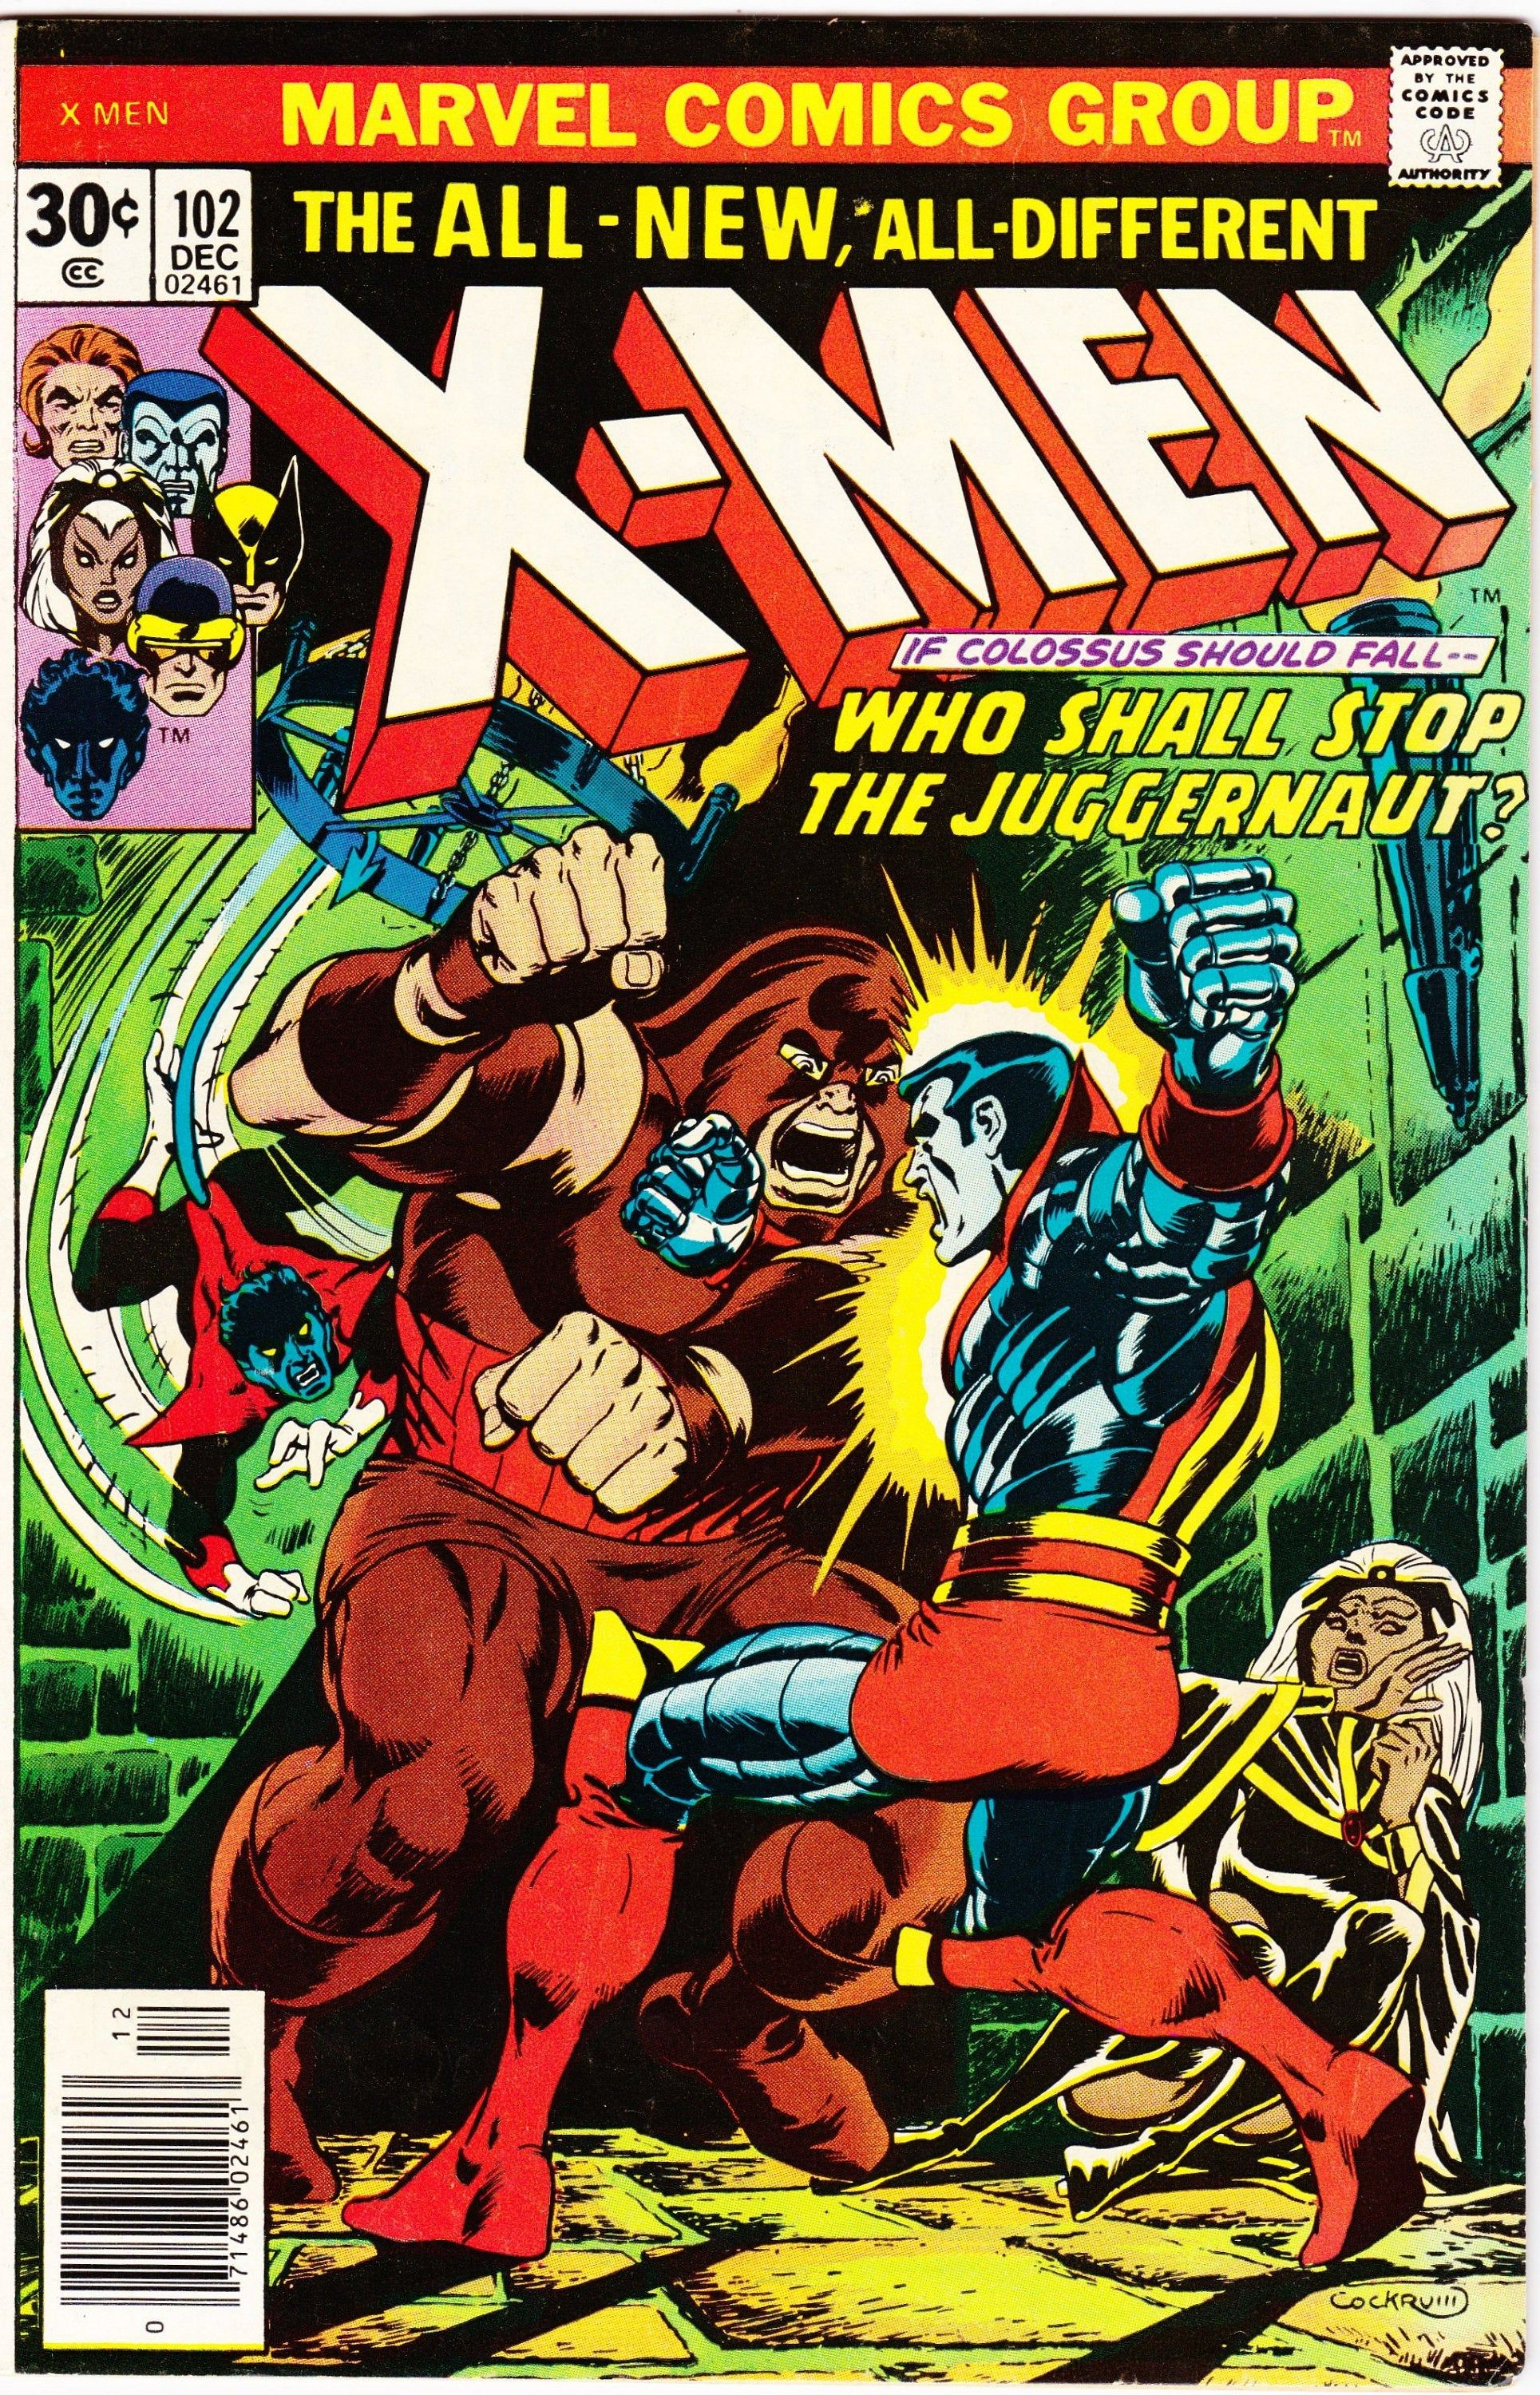 1990s THE UNCANNY XMEN key issues 1980s Marvel